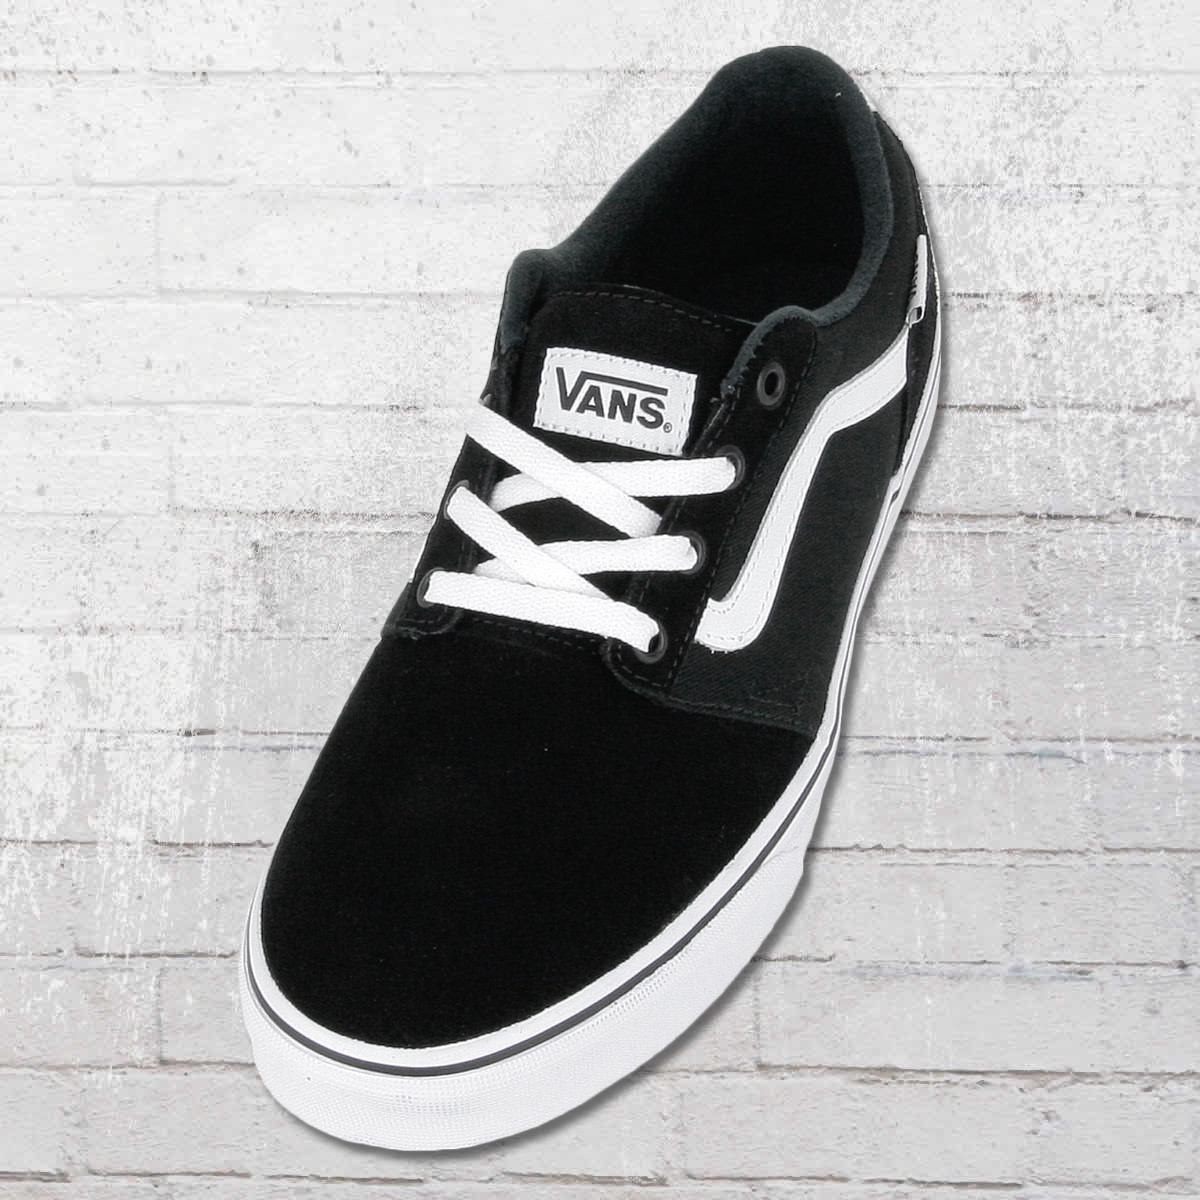 vans shoes black with white stripe